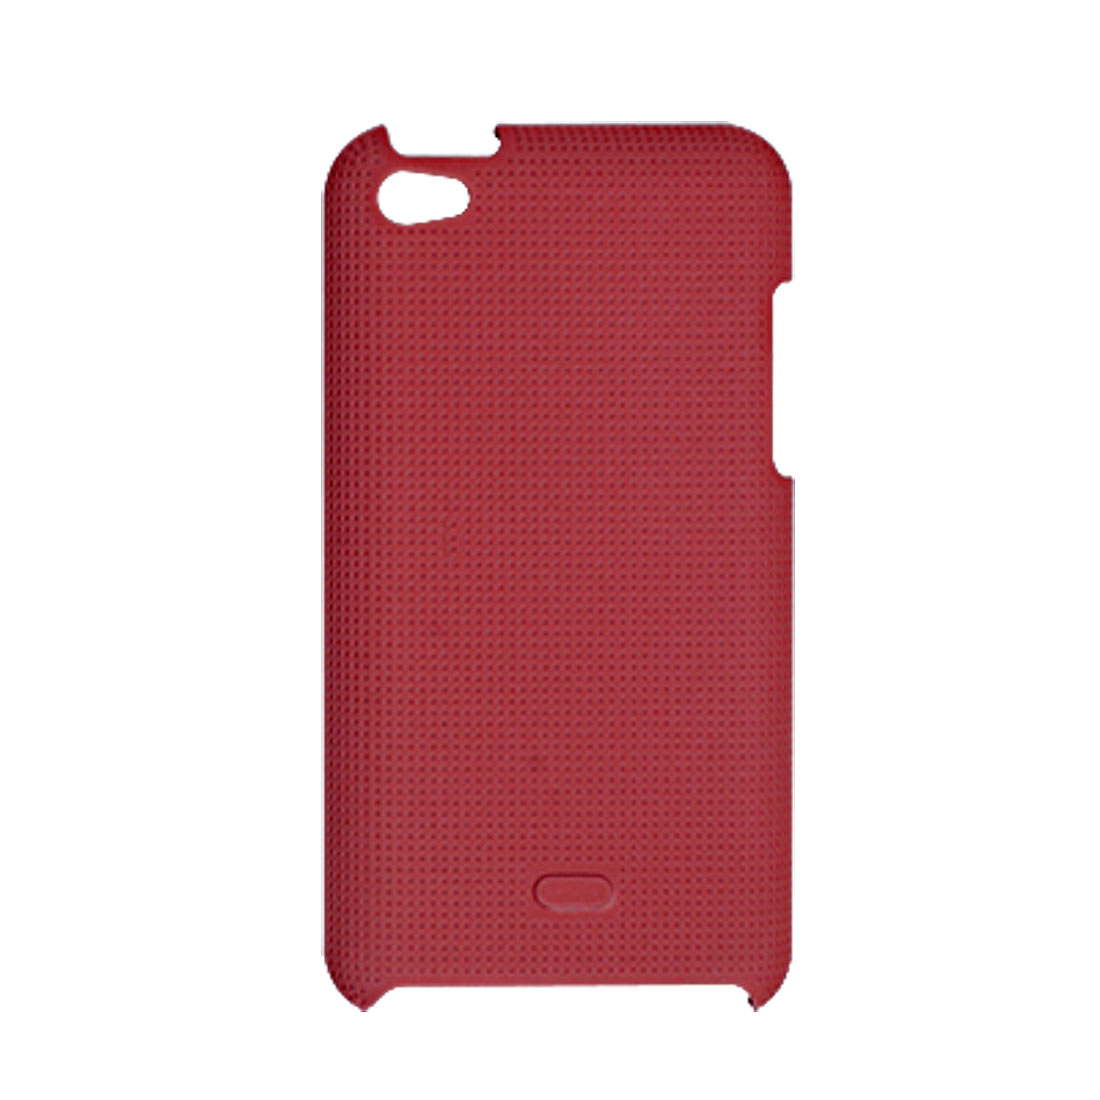 Rubberized Hard Plastic Back Case Red for iPod Touch 4G